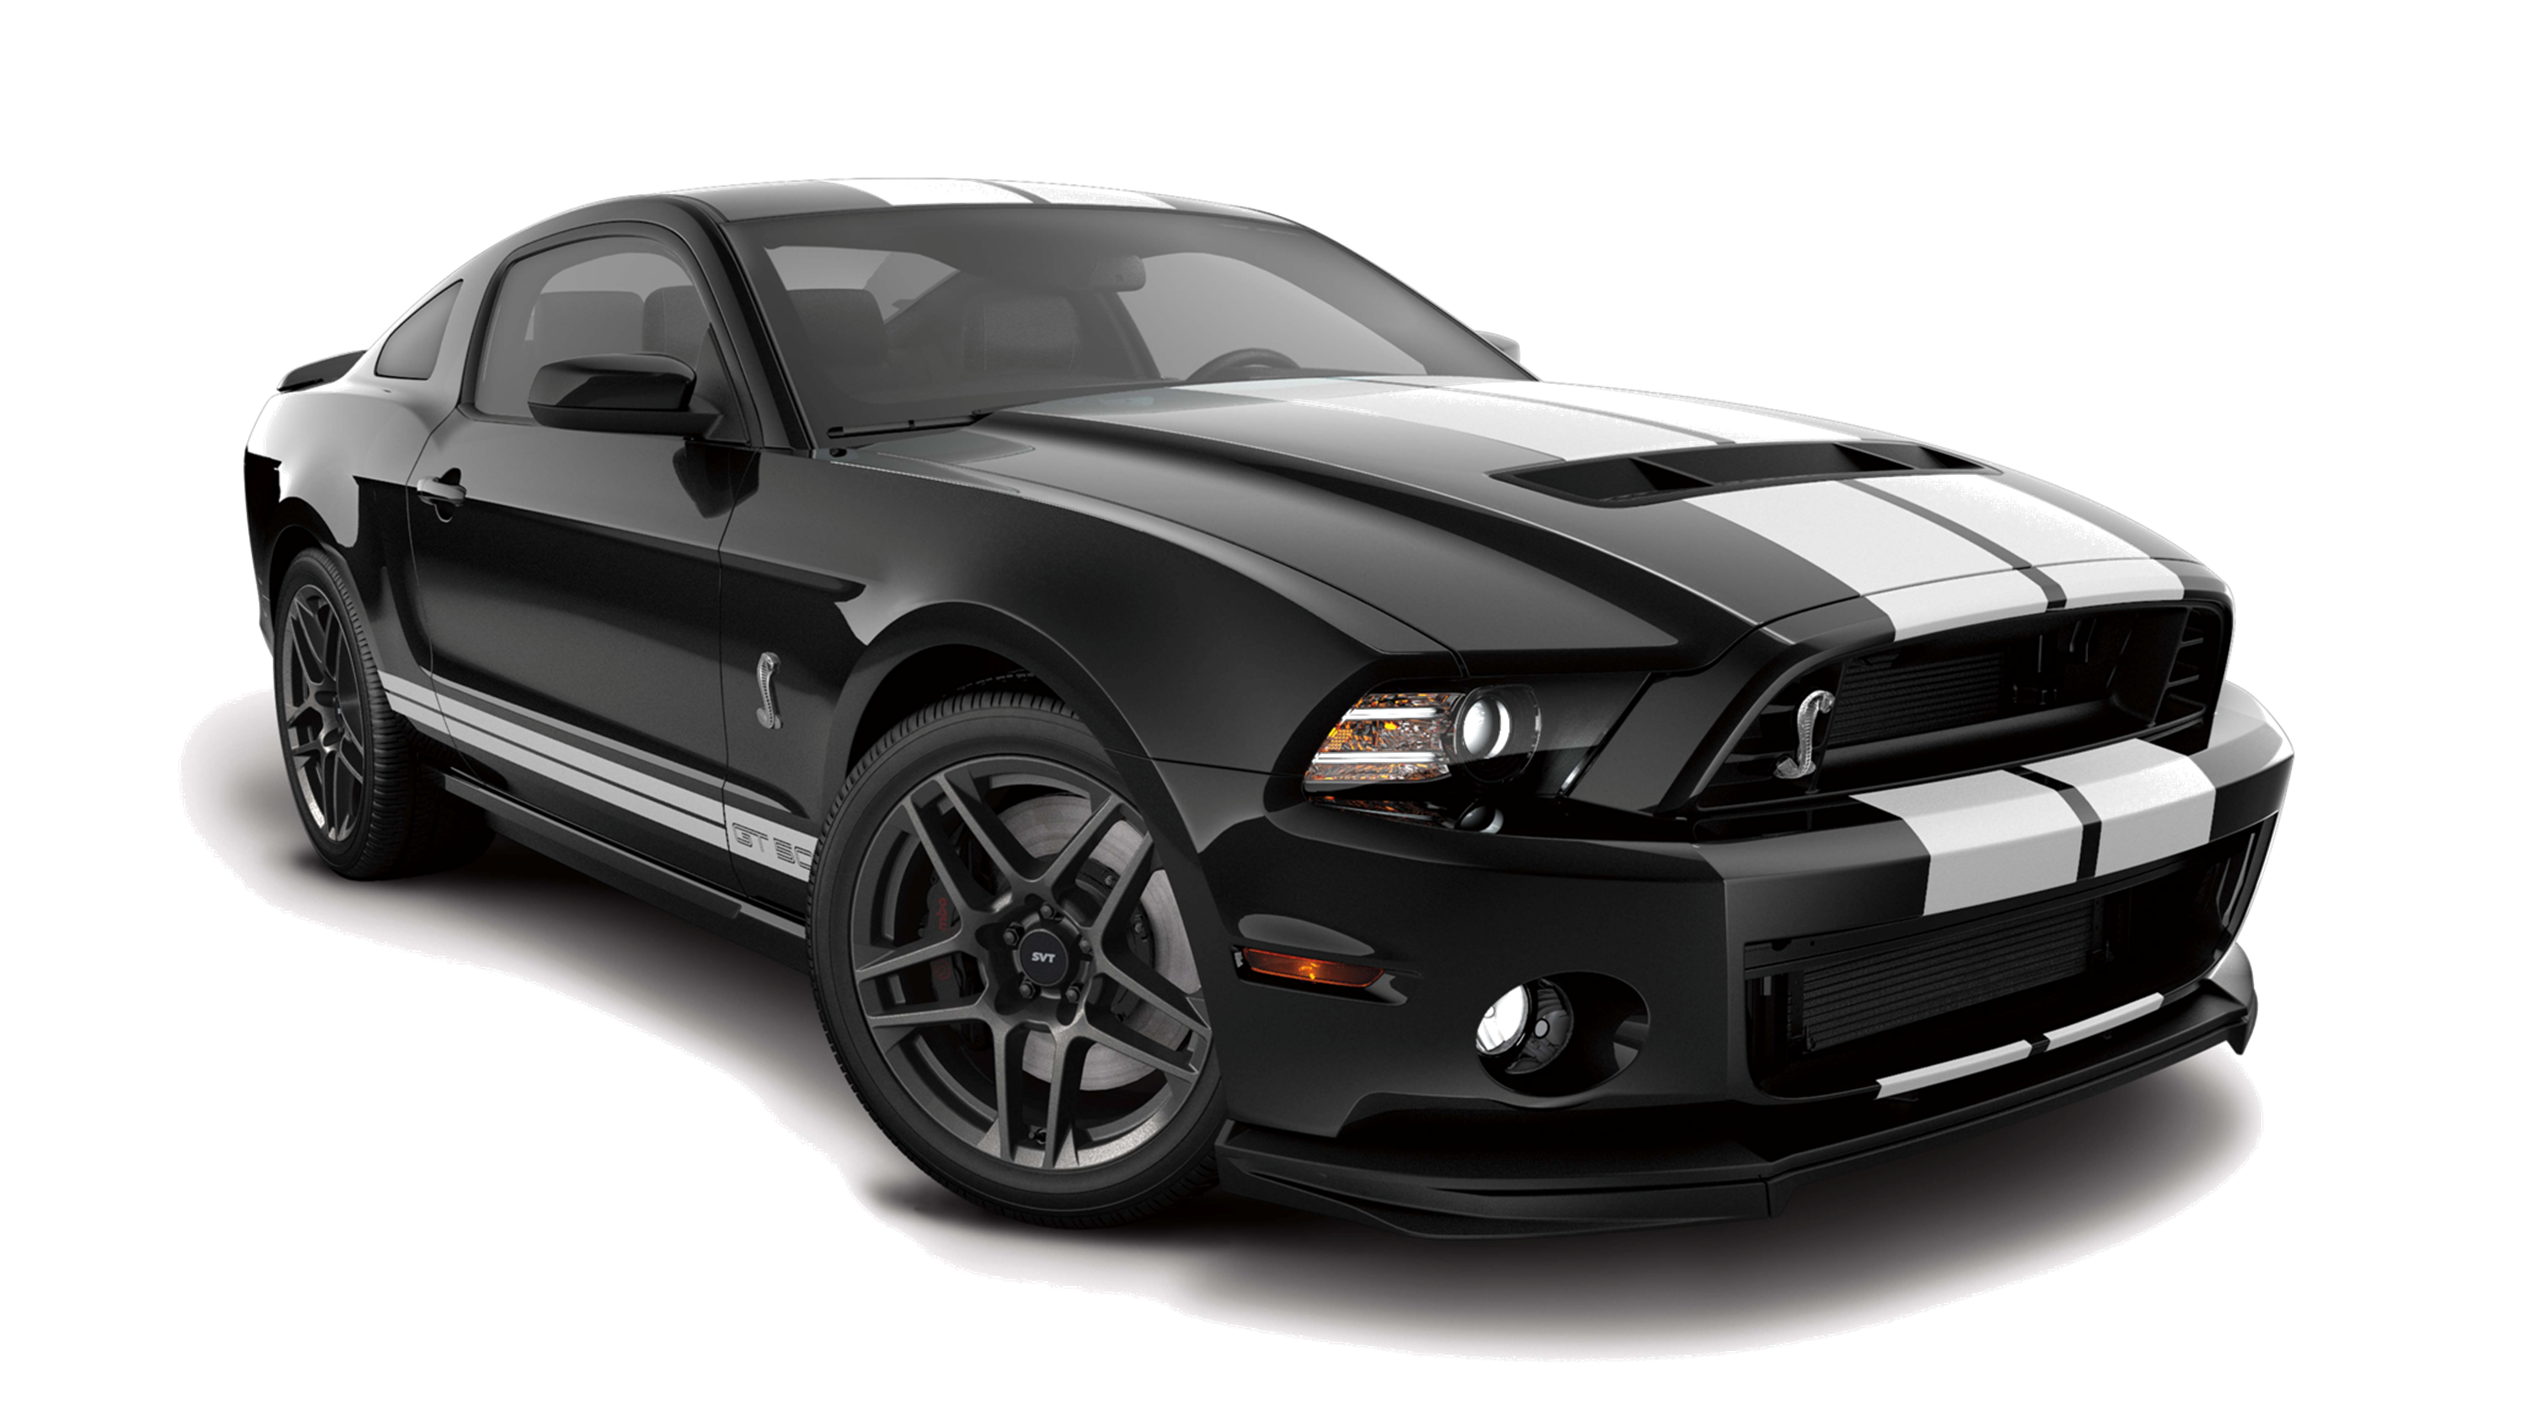 Png 2522x1419 Mustang With Transparent Background - Shelby PNG